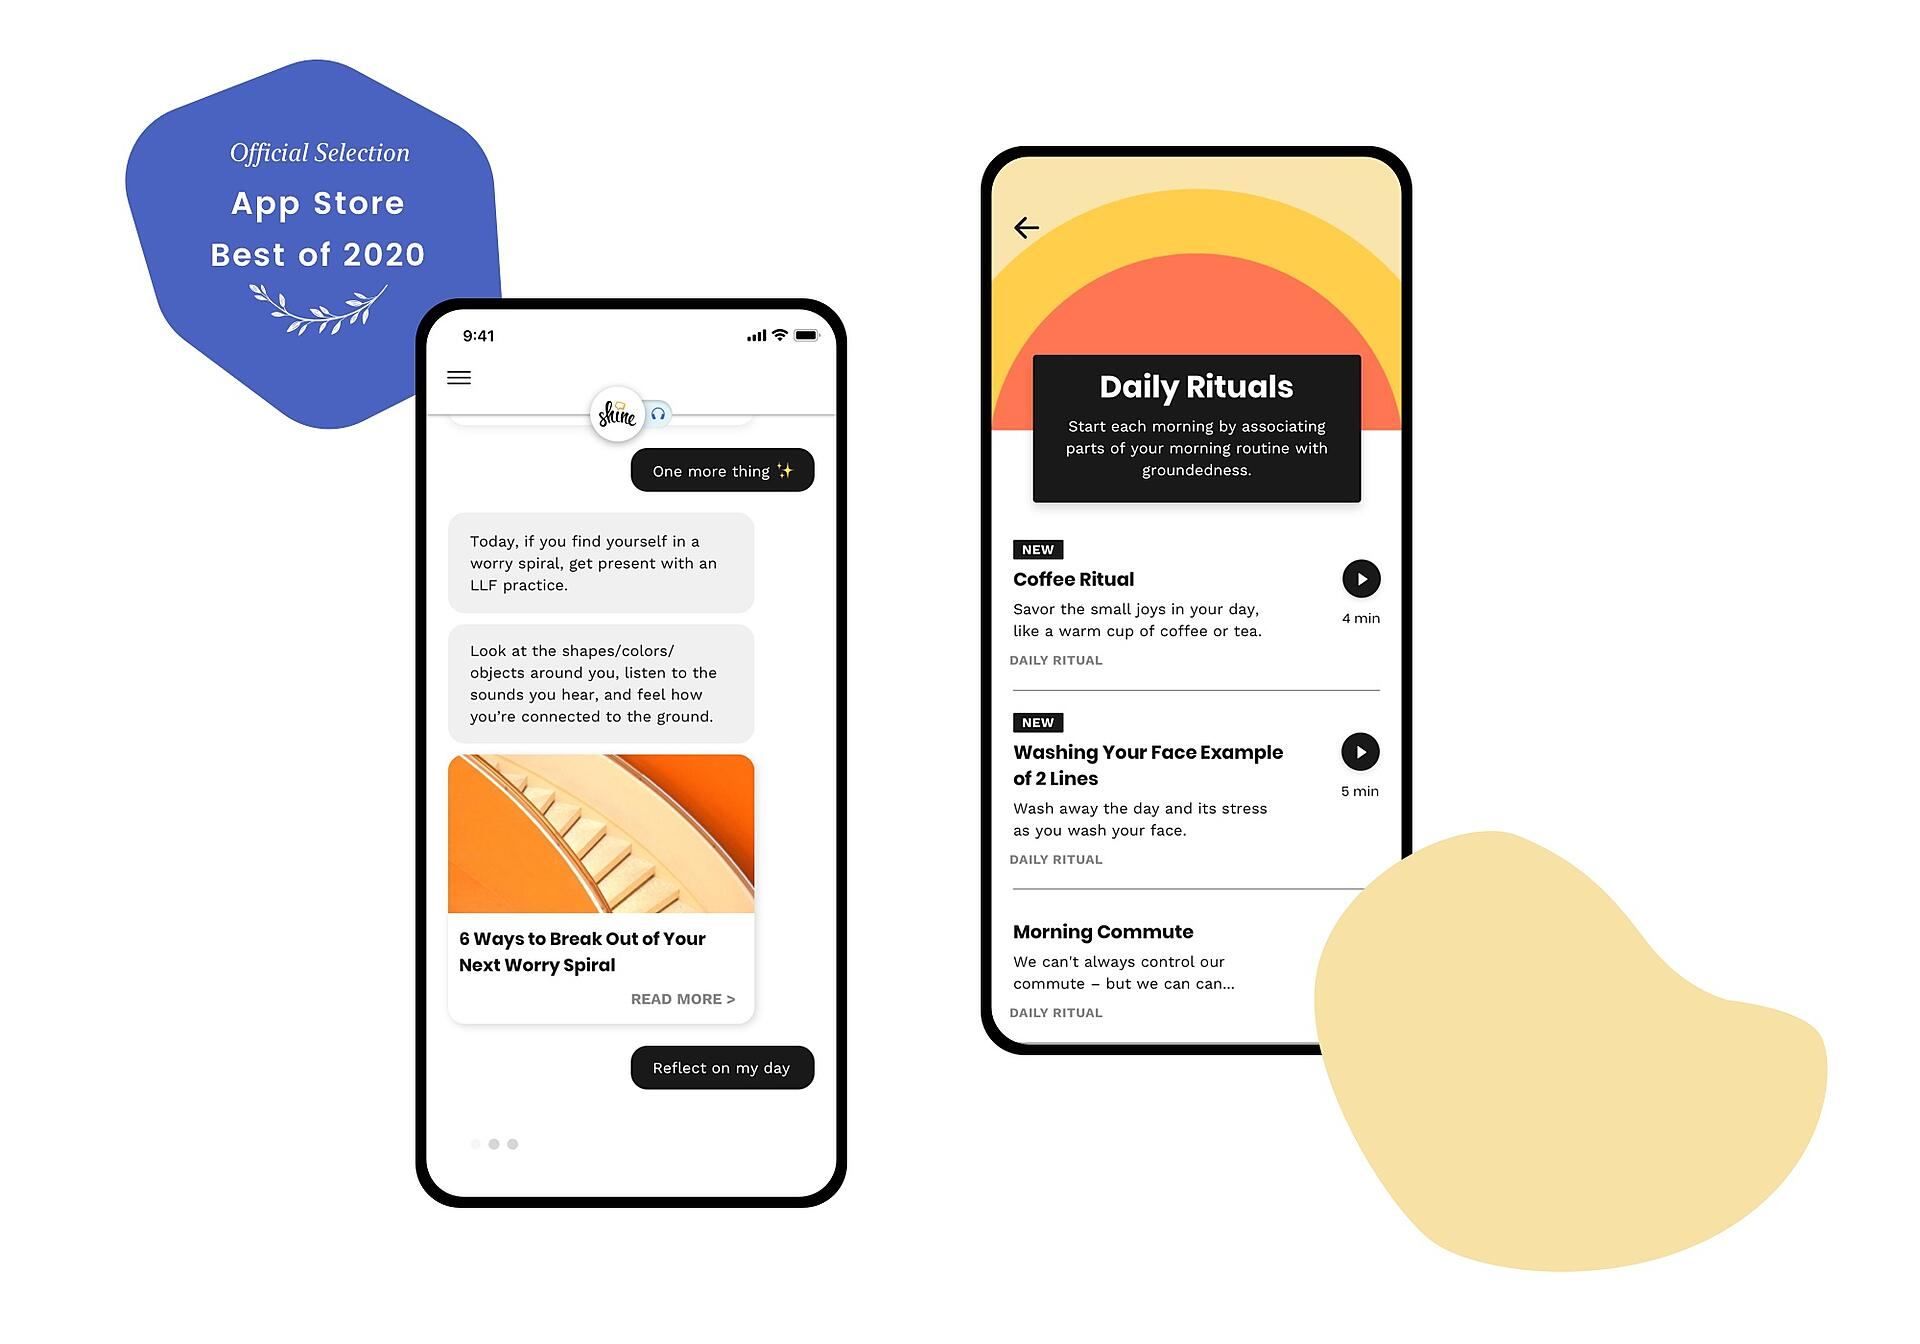 Shine App Store Best of 2020